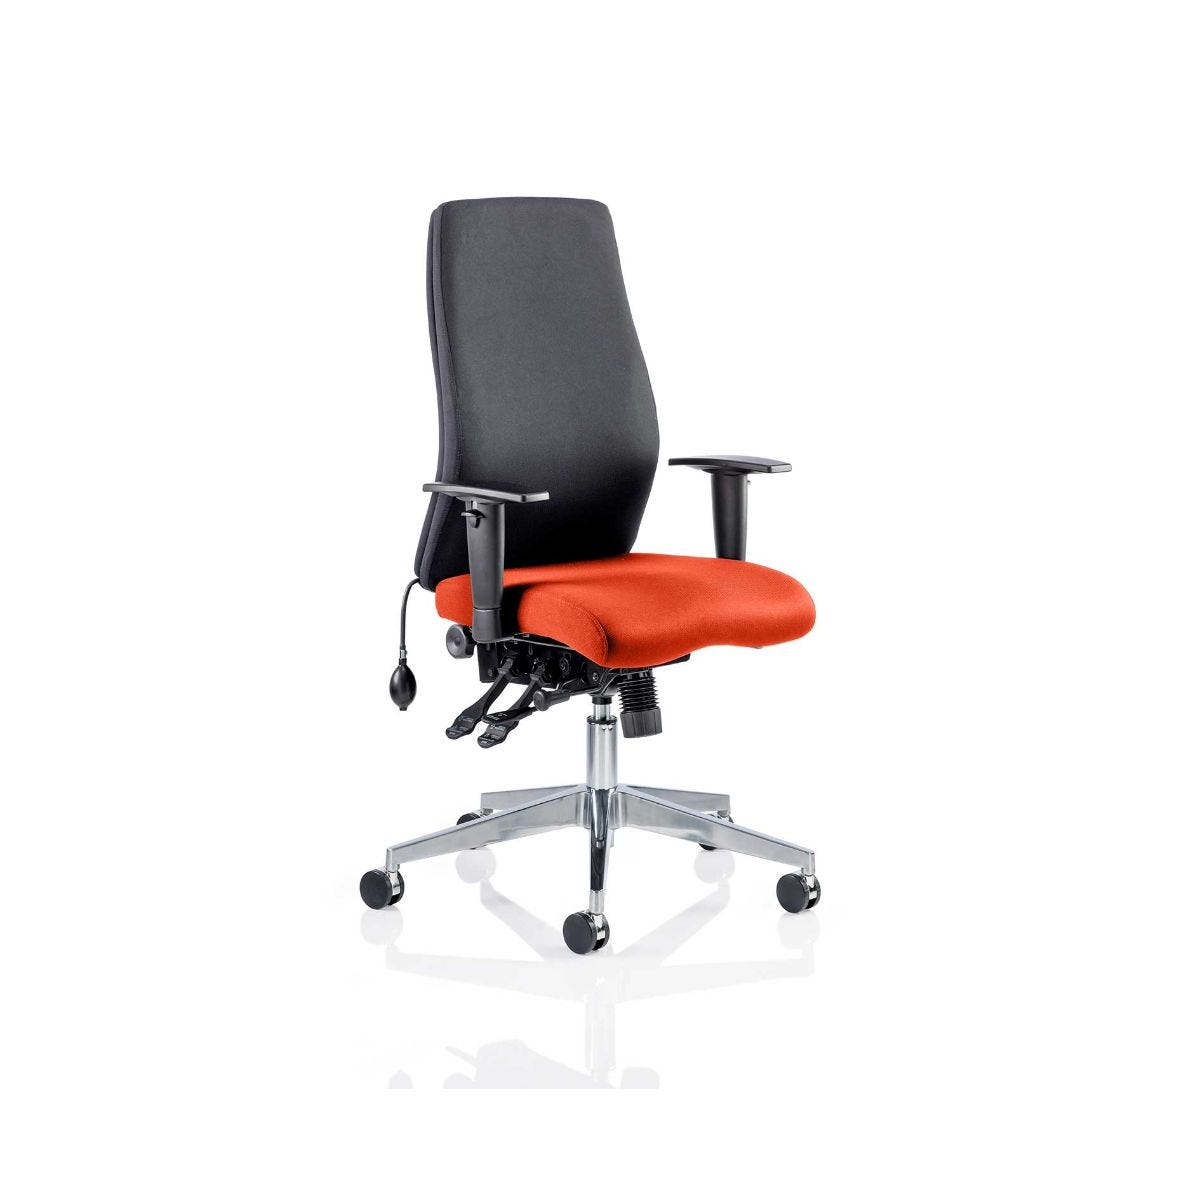 Onyx Office Chair, Tabasco